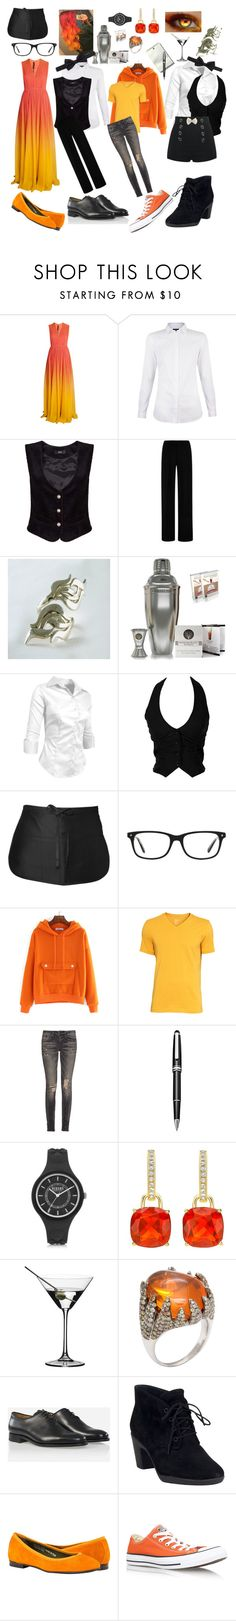 """Undertale: Grillby"" by cartoonvillian ❤ liked on Polyvore featuring Elie Saab, Clover Canyon, Chef Works, Kensington Road, R13, Montblanc, Versus, Riedel, Bow-Tie and Clarks"